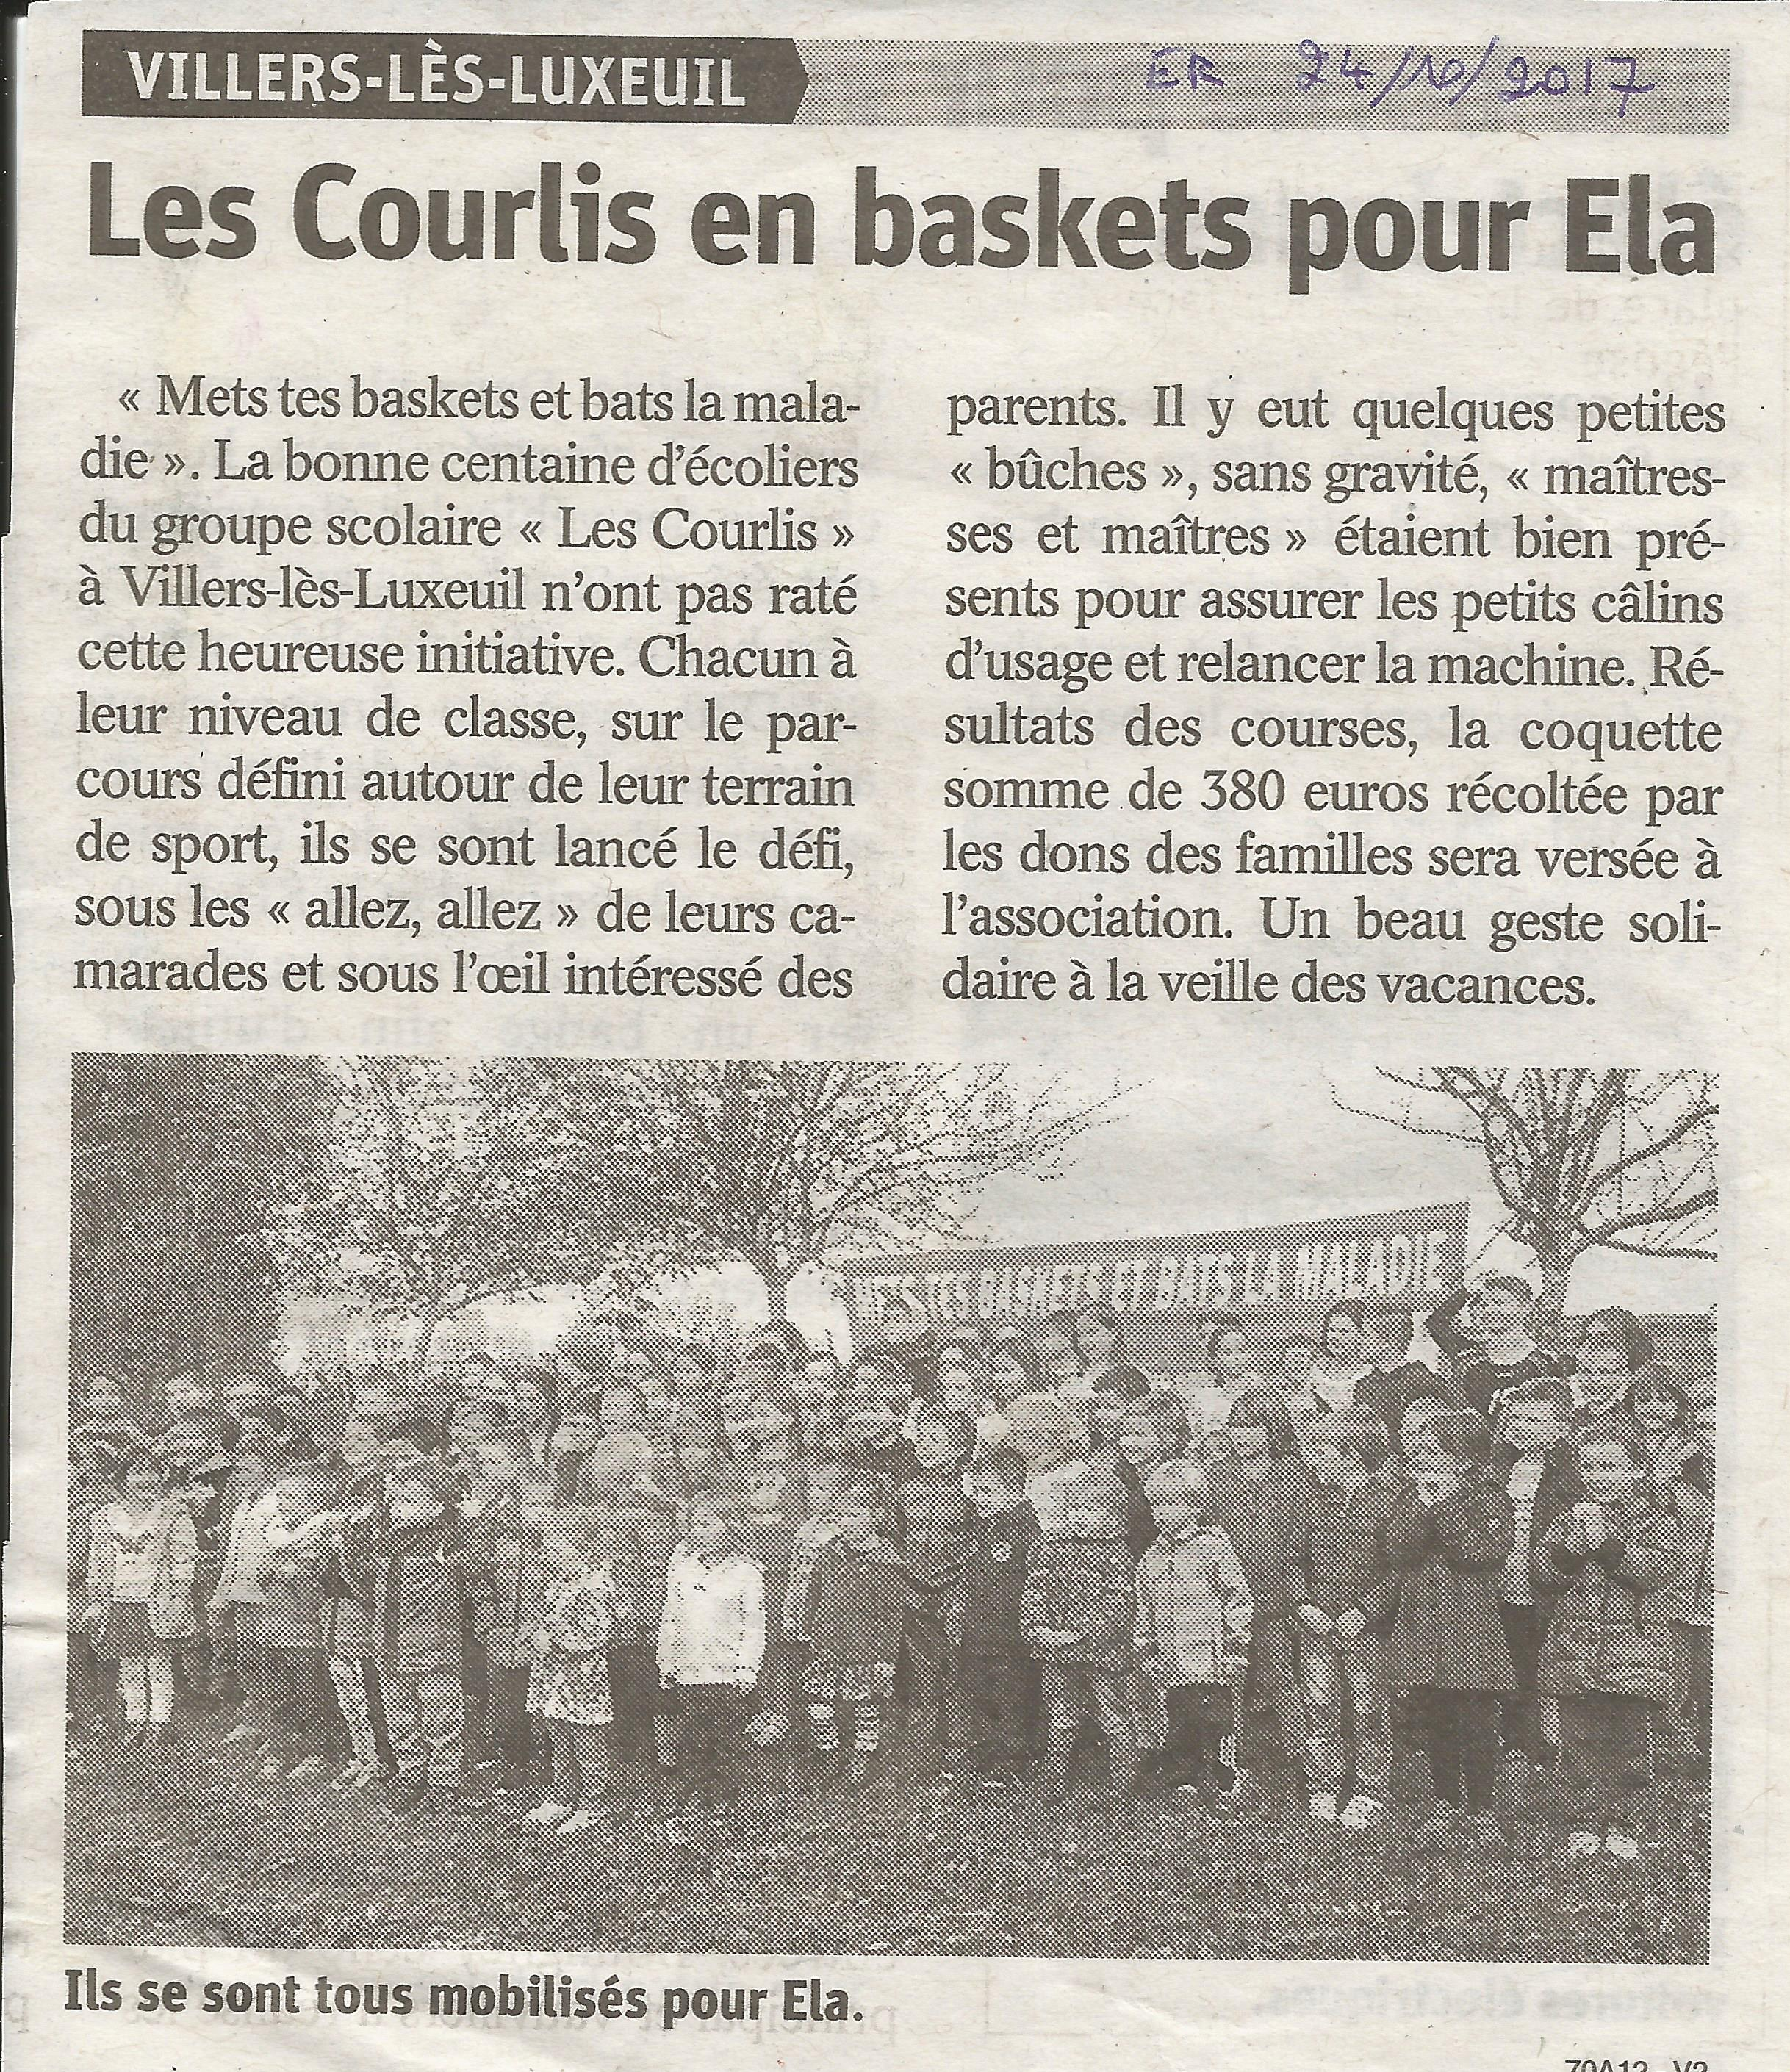 https://www.villers-les-luxeuil.com/projets/villers/files/images/2017_Mairie/Presse/2017_10_24.jpg